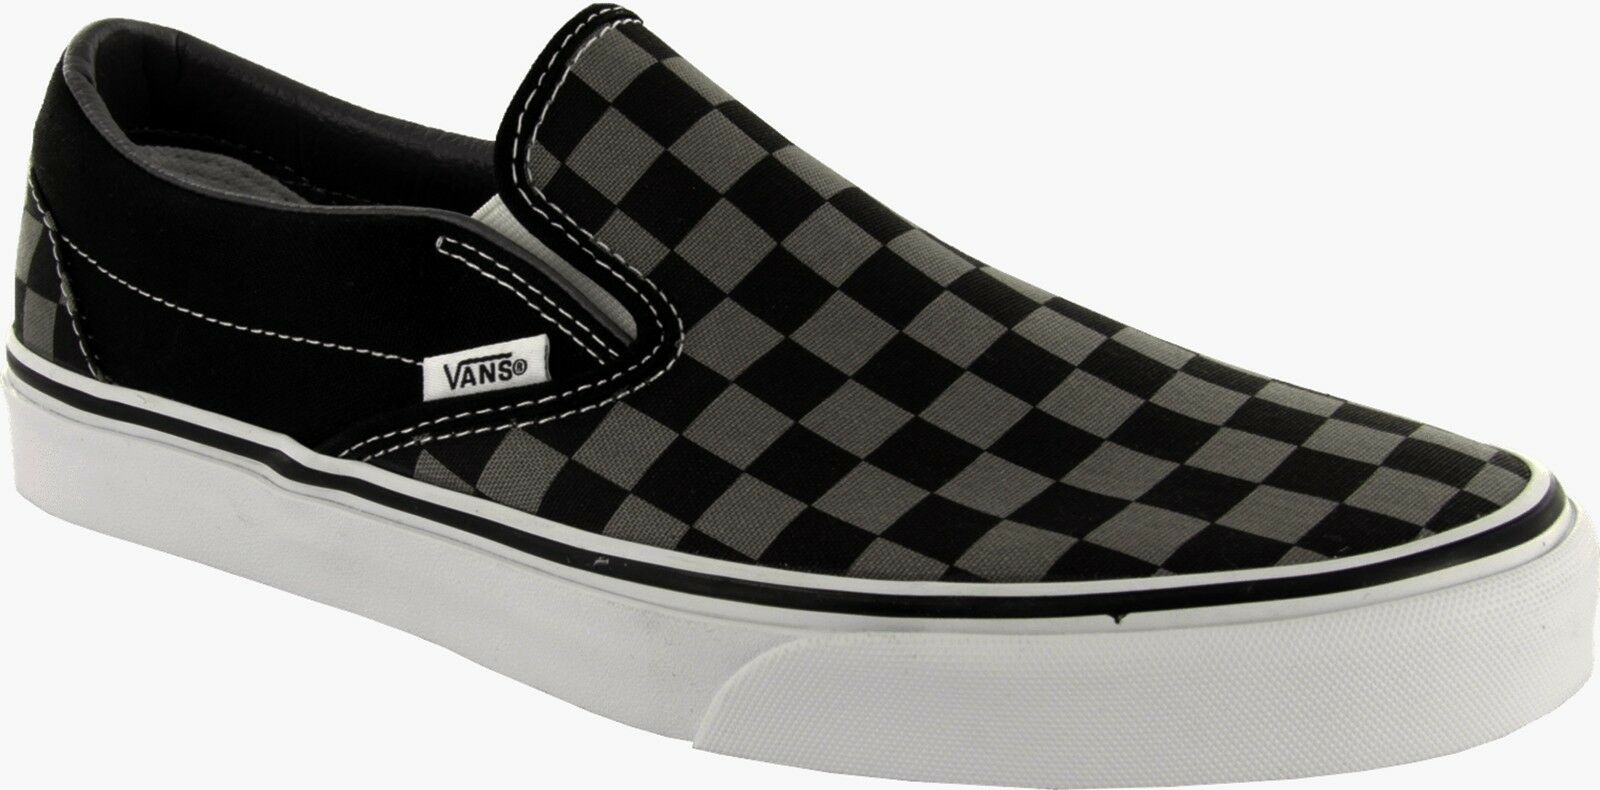 zapatos Negro Vans Classic Slip-on Checkerboard Negro zapatos N° 45.0 US hombre 11.5  cm 29.5 5643b5